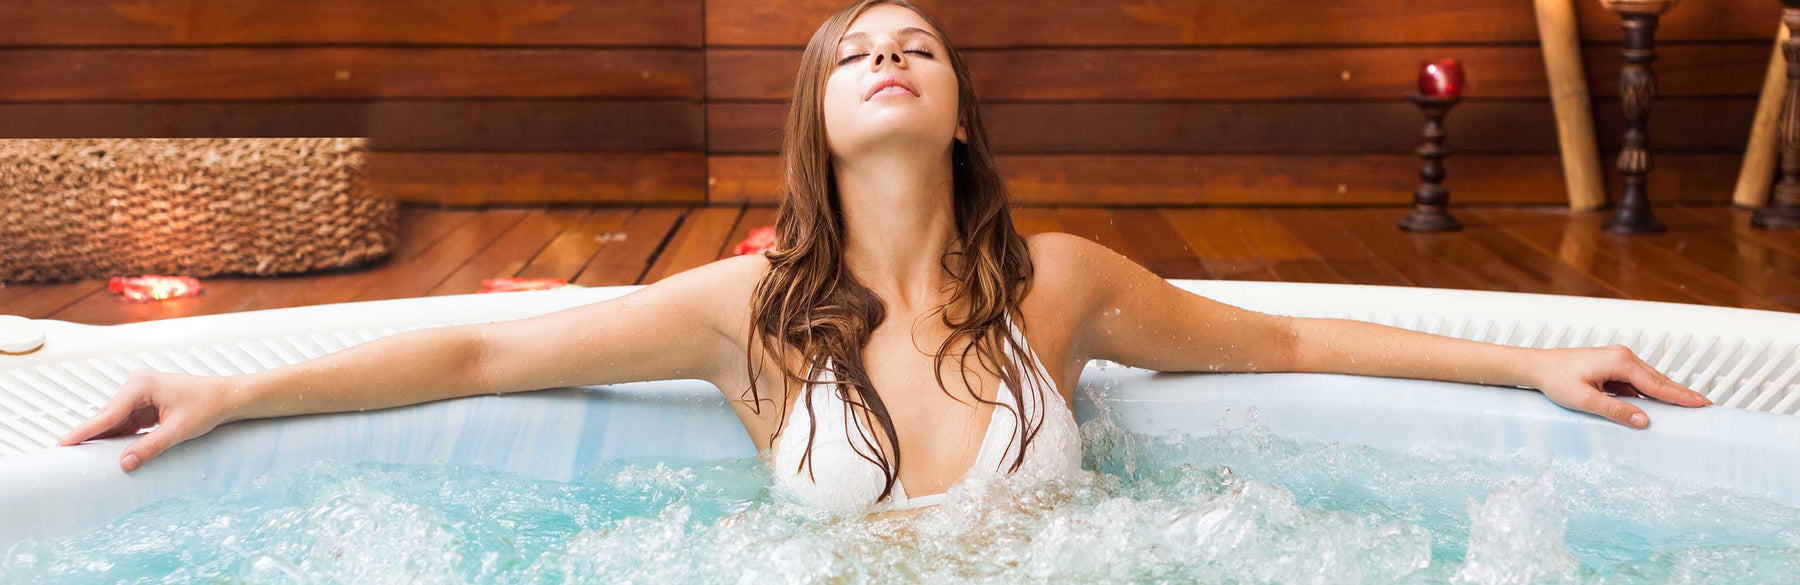 Get Fit With These 5 Effective Hot Tub Exercises